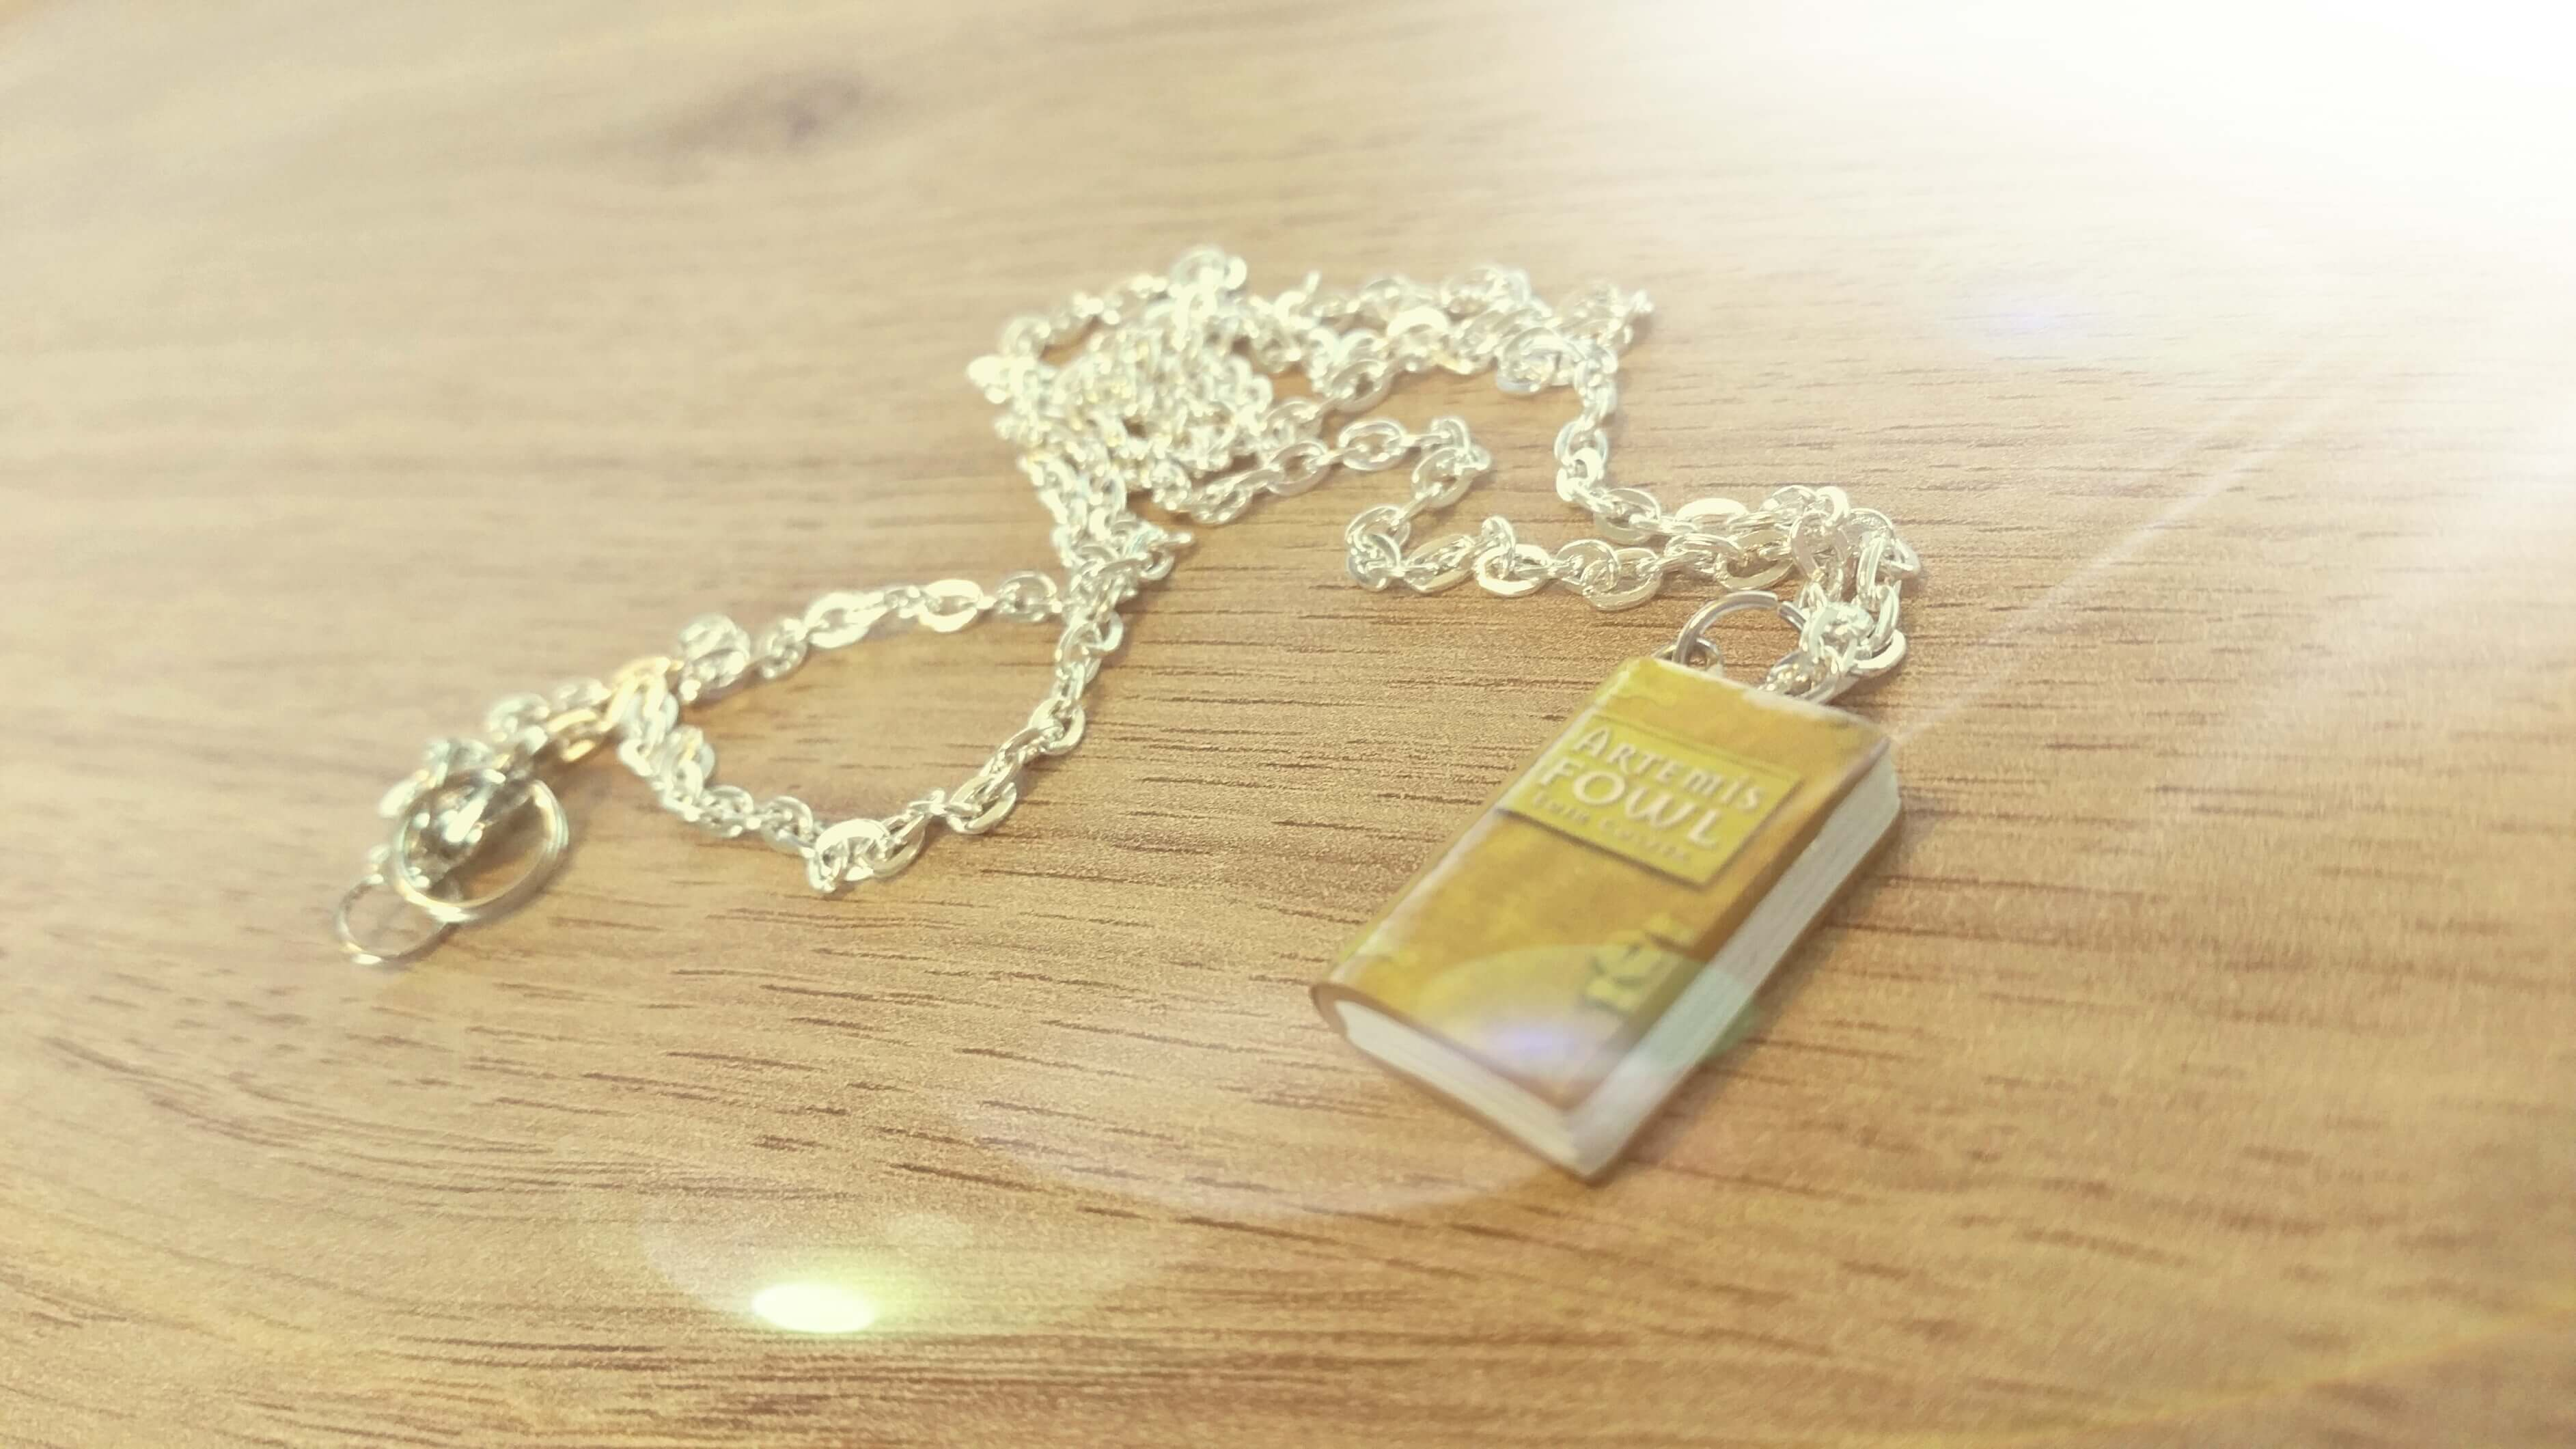 Artemis Fowl Mini Book Necklace Giveaway!